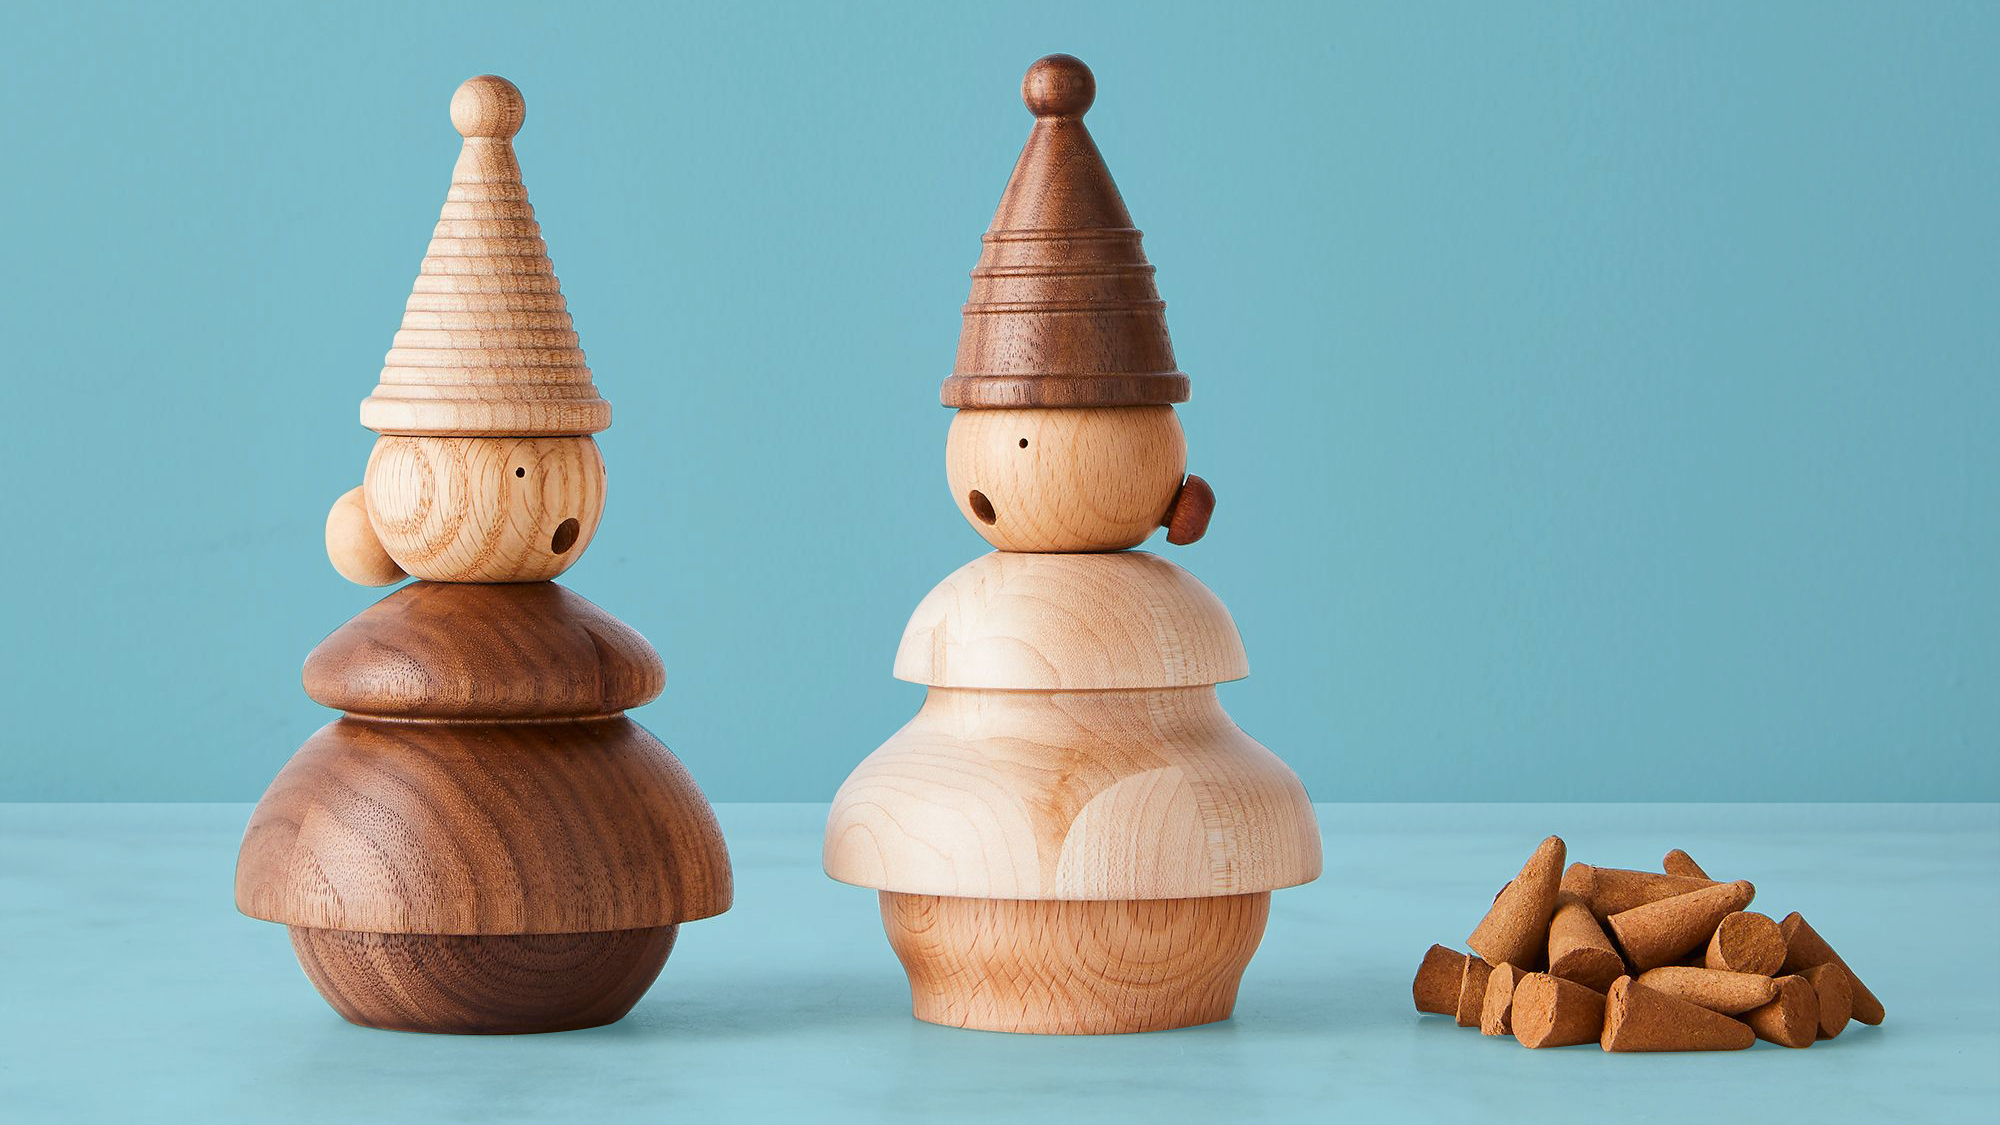 best housewarming gifts, ideas - incense gnomes on blue background